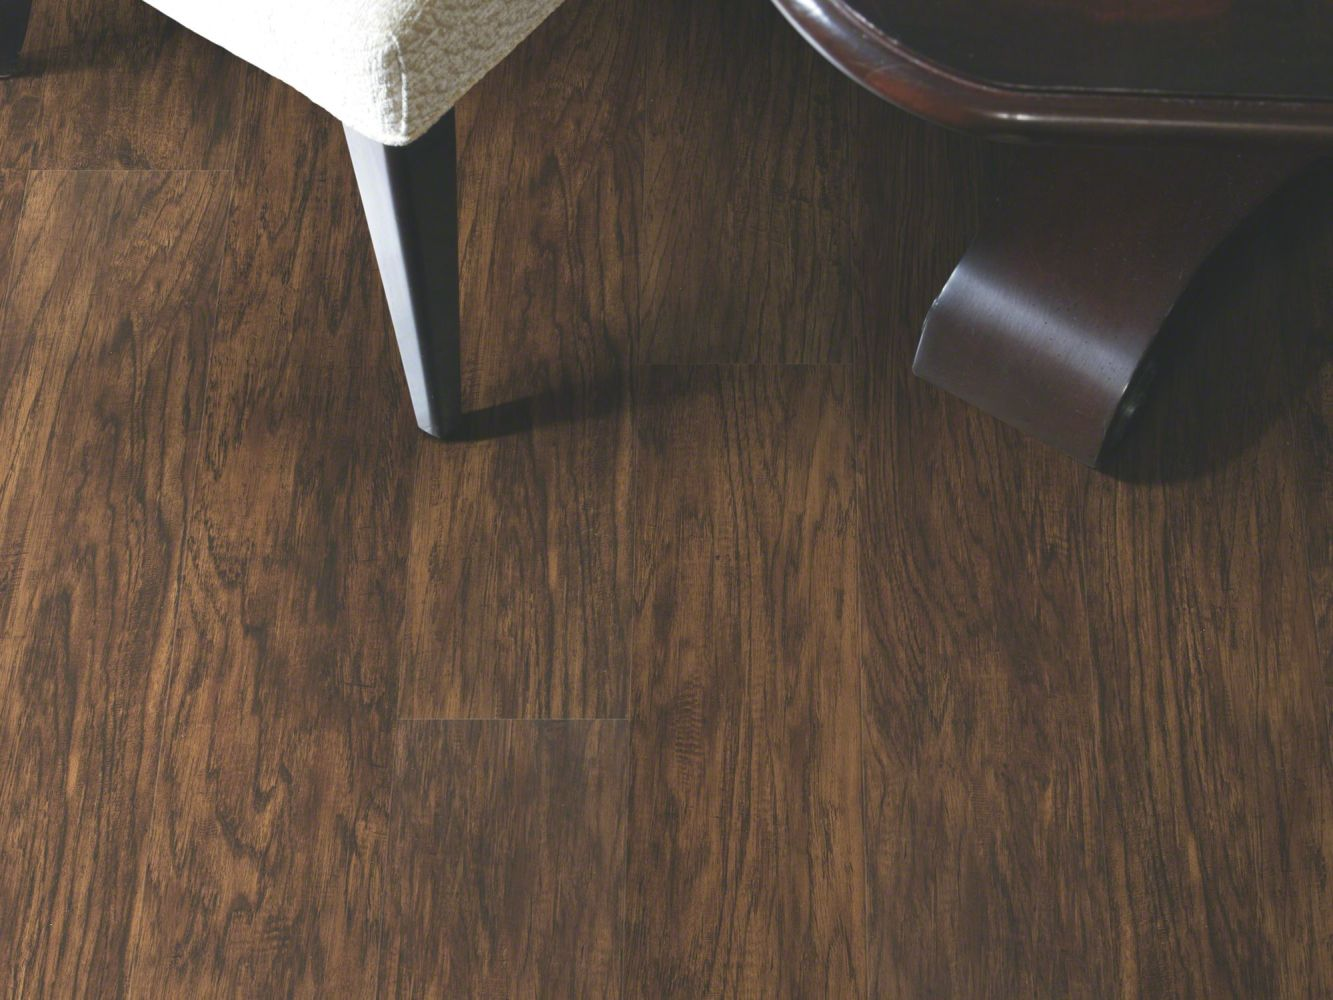 Shaw Floors Resilient Residential Endura Plus Sepia Oak 00634_0736V